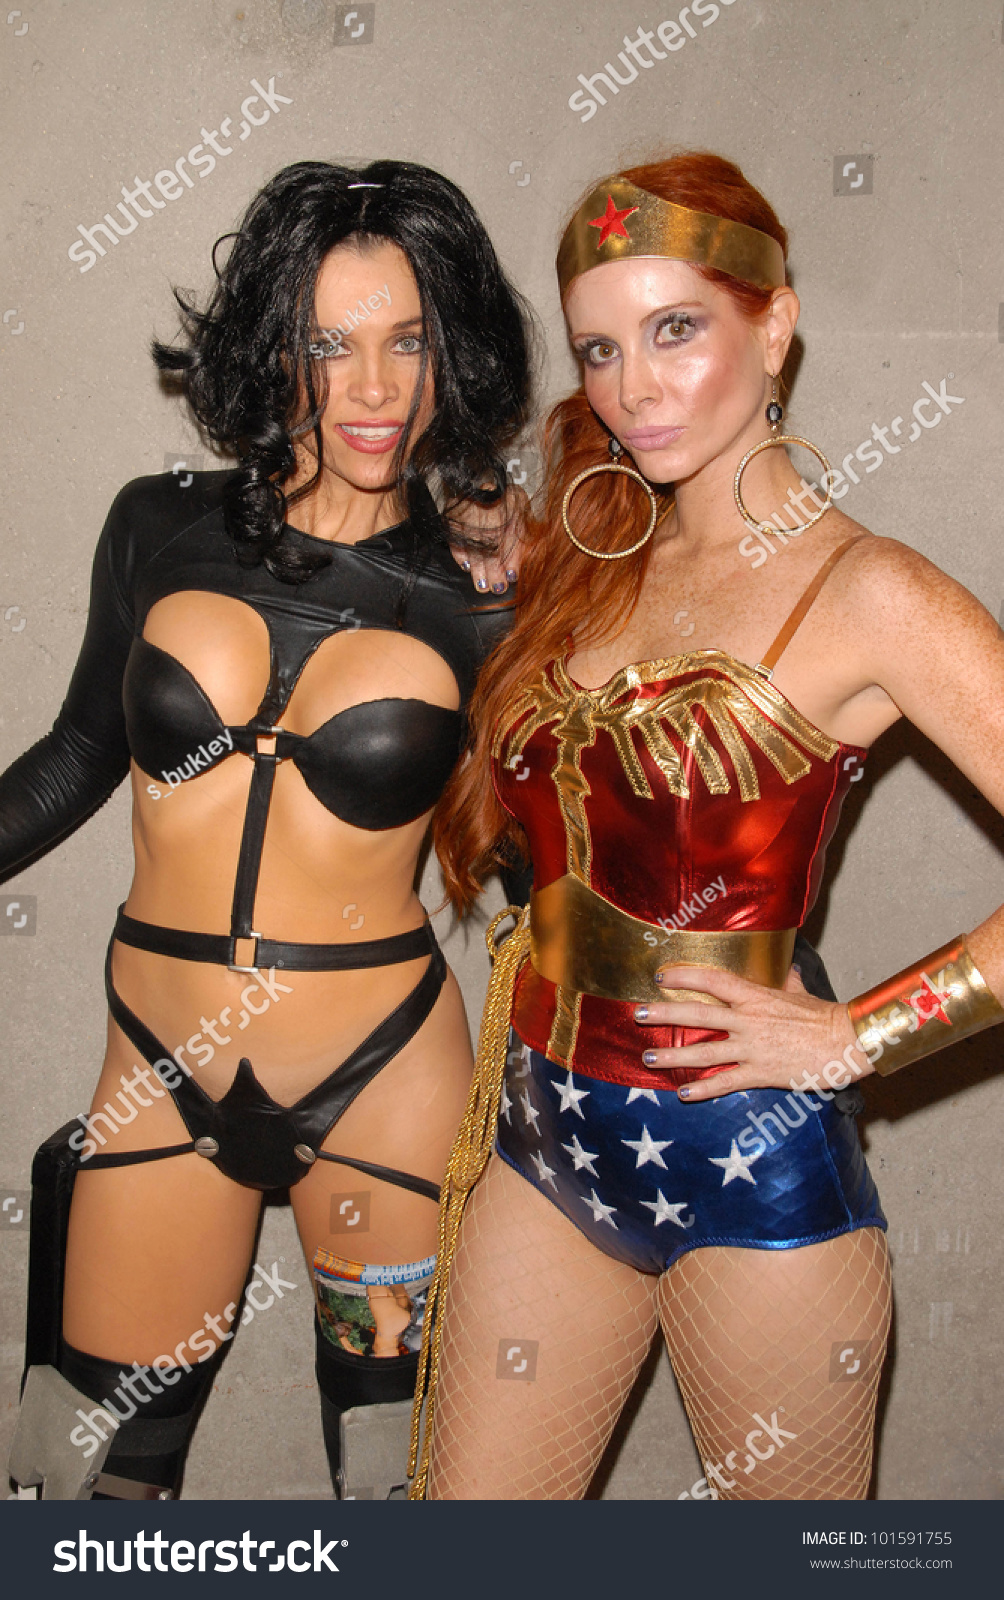 Alicia Arden as Aeon Flux with Phoebe Price as Wonder Woman at San Diego  Comic Con